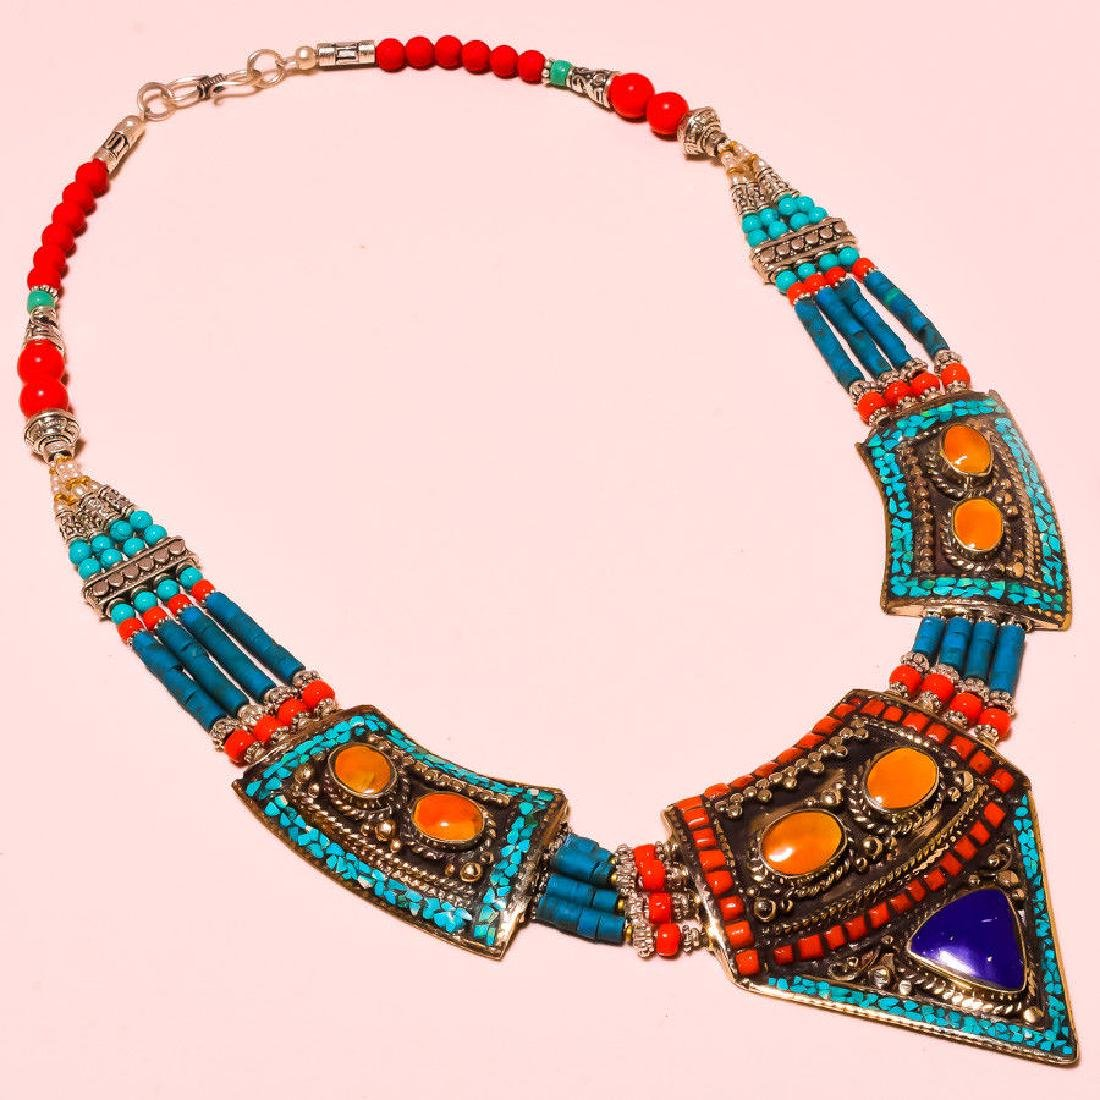 Tibetan Lapis Lazuli & Turquoise & Red Coral Necklace